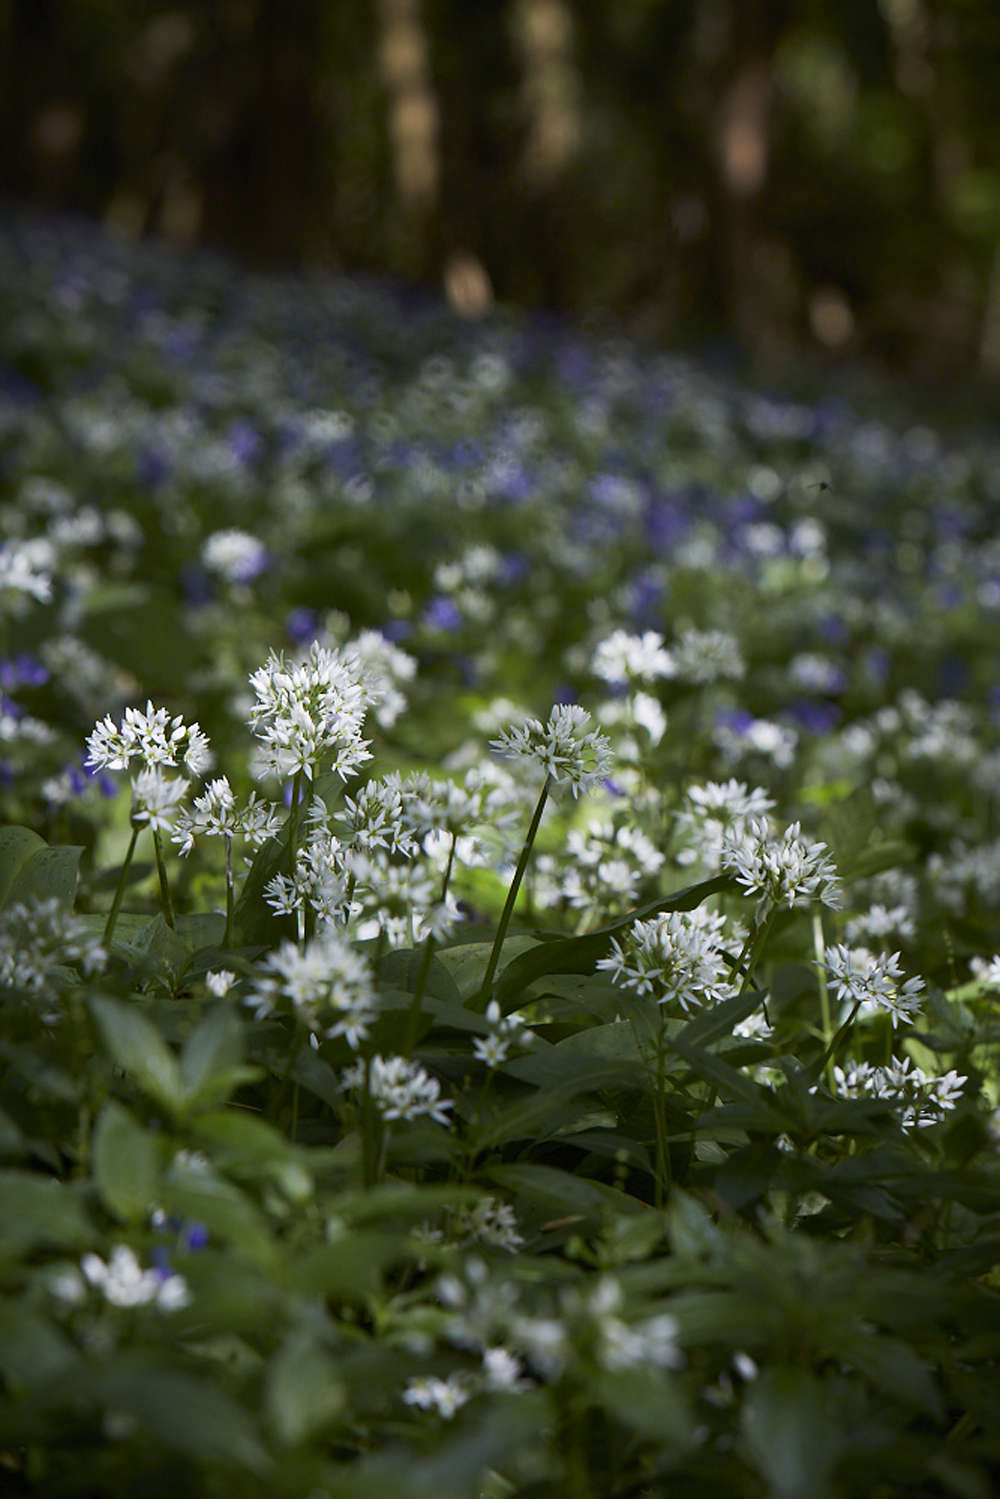 Wild garlic is a type of chive.